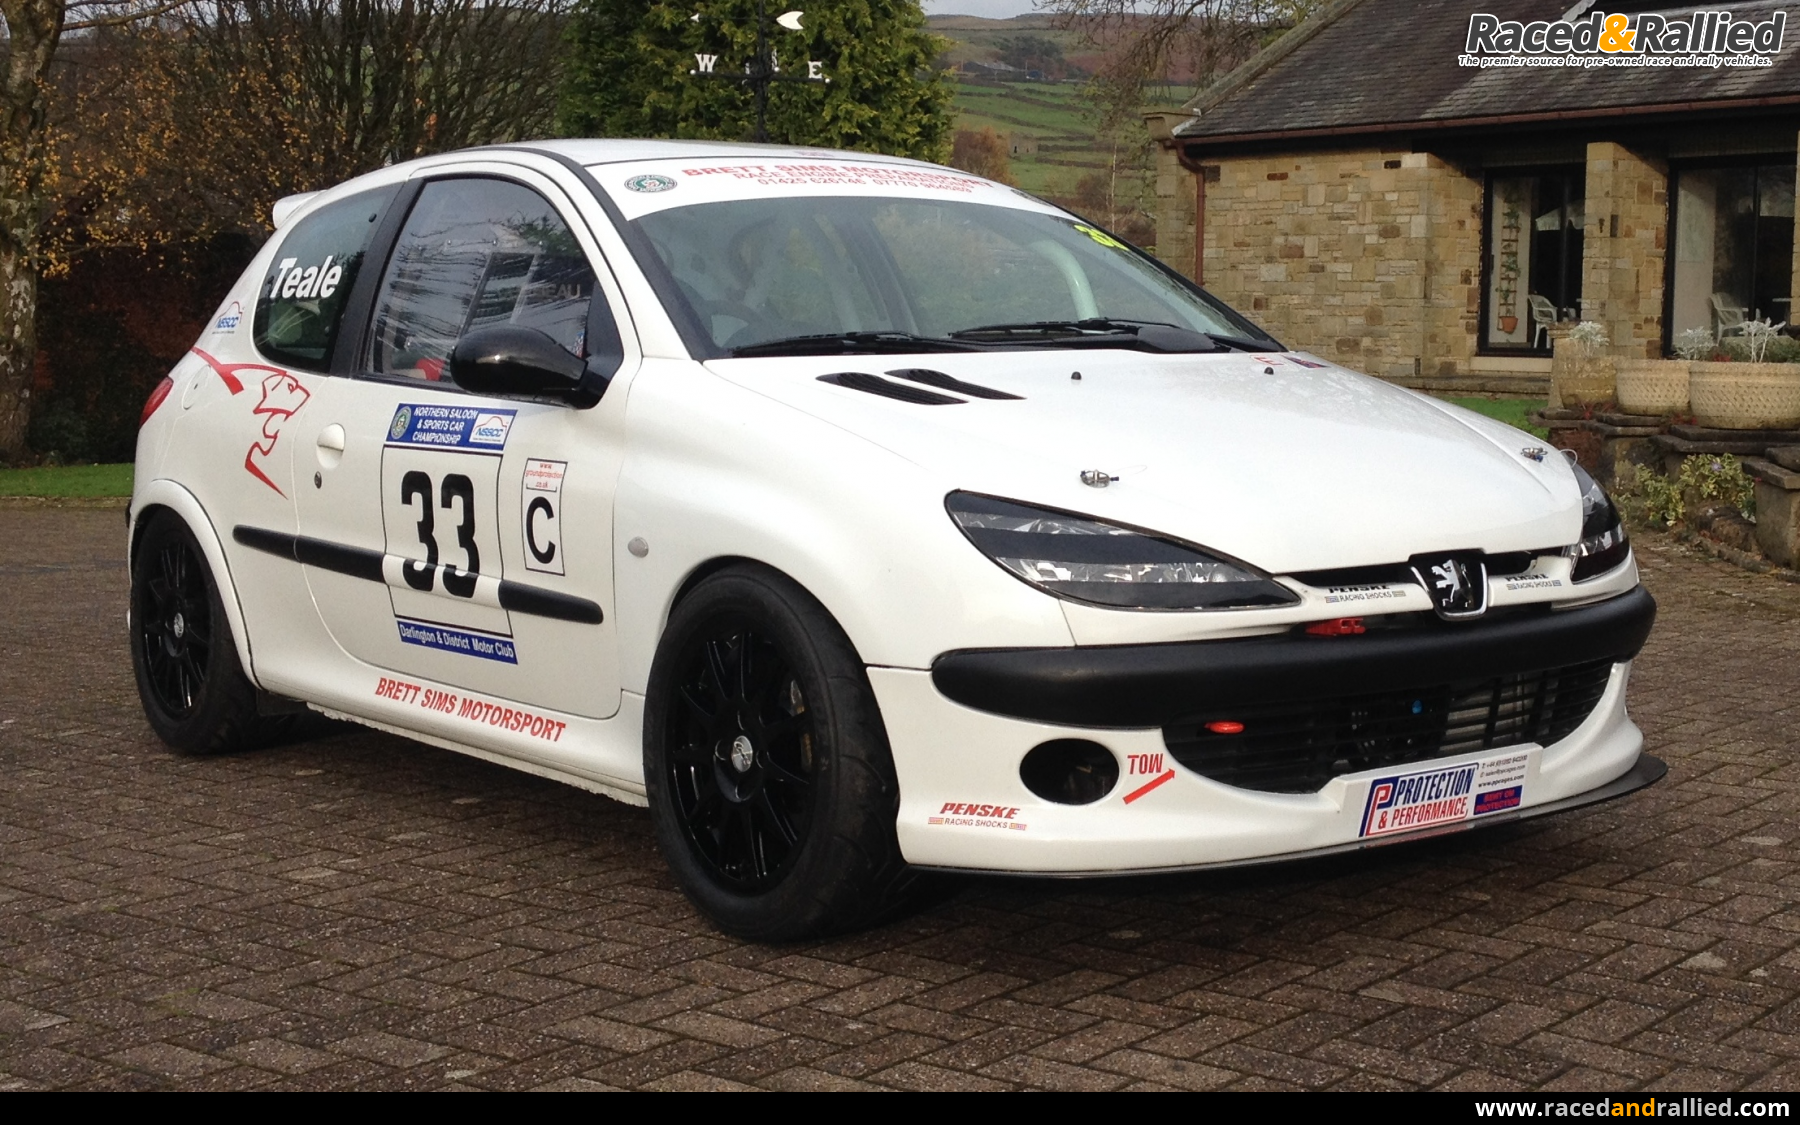 Peugeot 206 Race Car,Rally,Sprint/hillclimb, Track 274 BHP